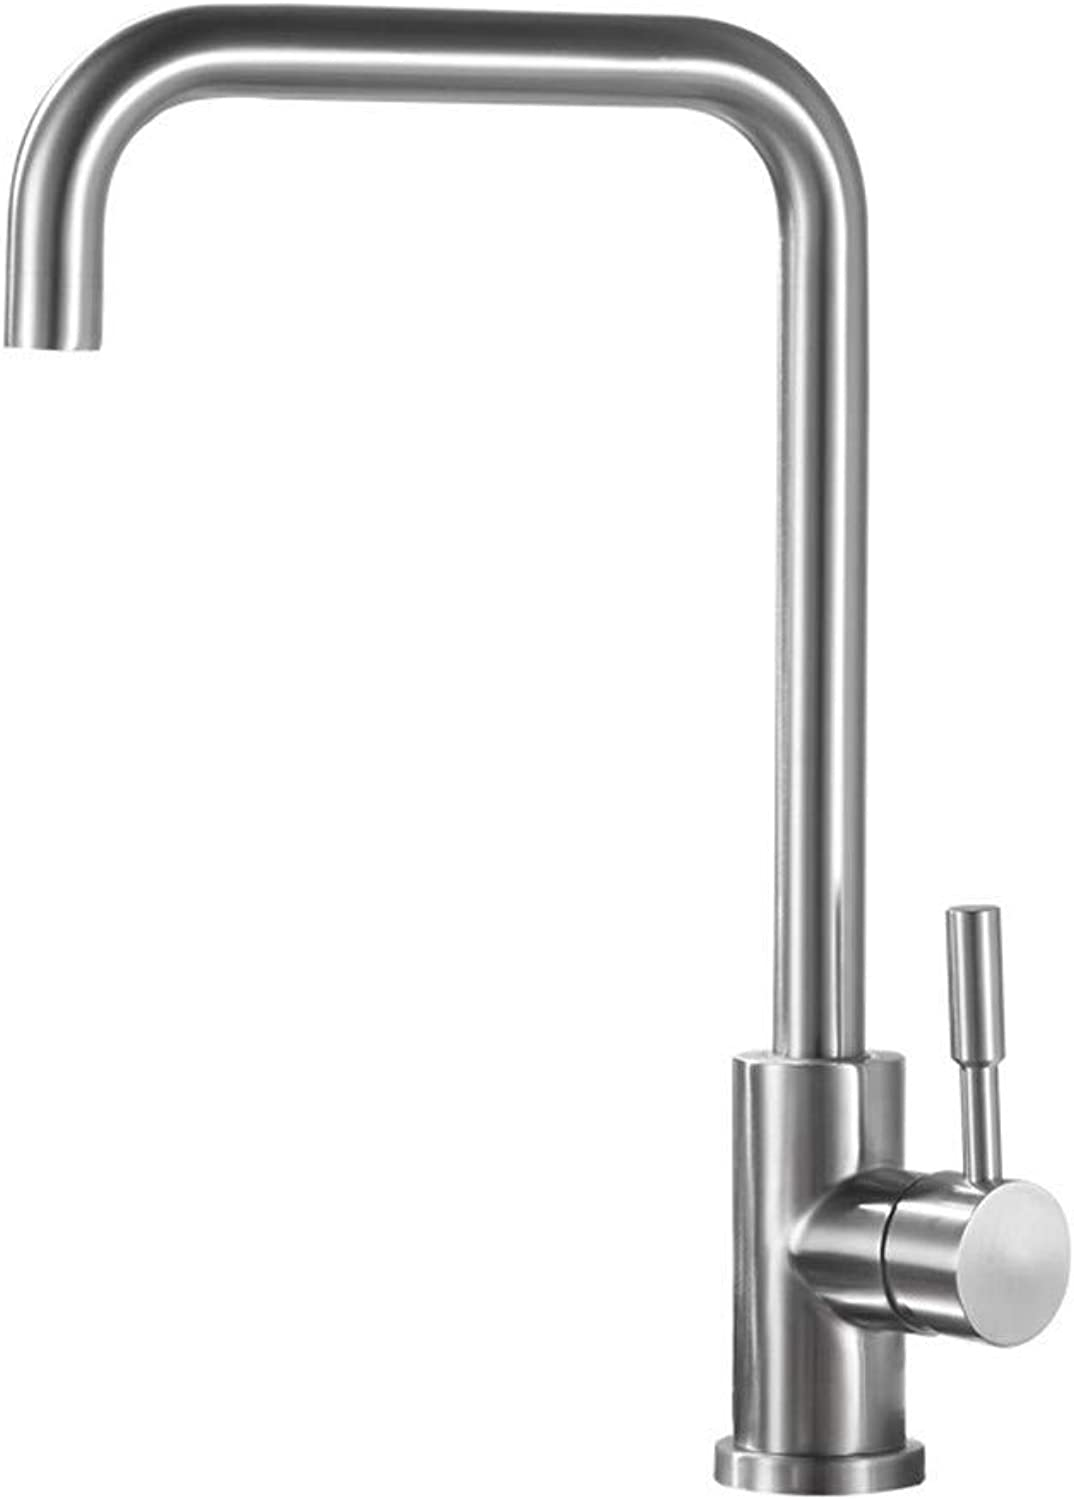 Oudan Twentysomething Caipen Kitchen Faucet Sink Faucet Brushed Stainless SteelS65-UE6589321792 (color   -, Size   -)